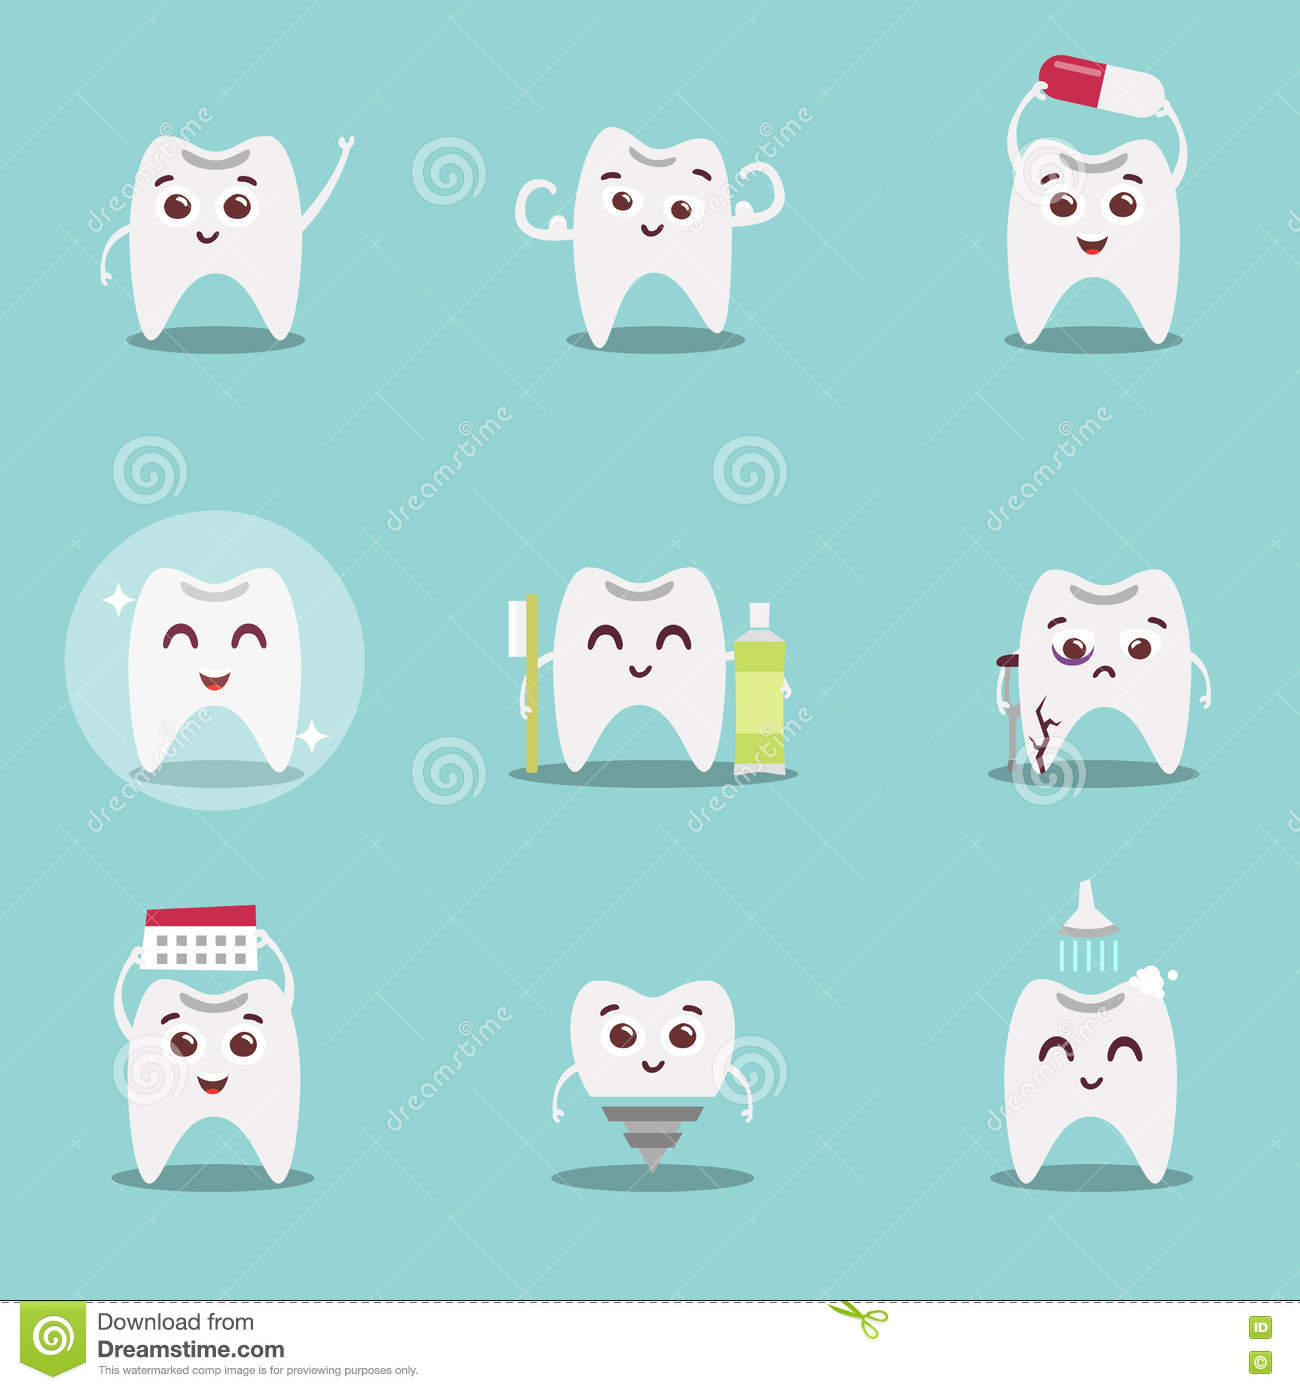 set-cute-cartoon-teeth-brush-clean-great-health-dental-care-concept-79010050.jpg